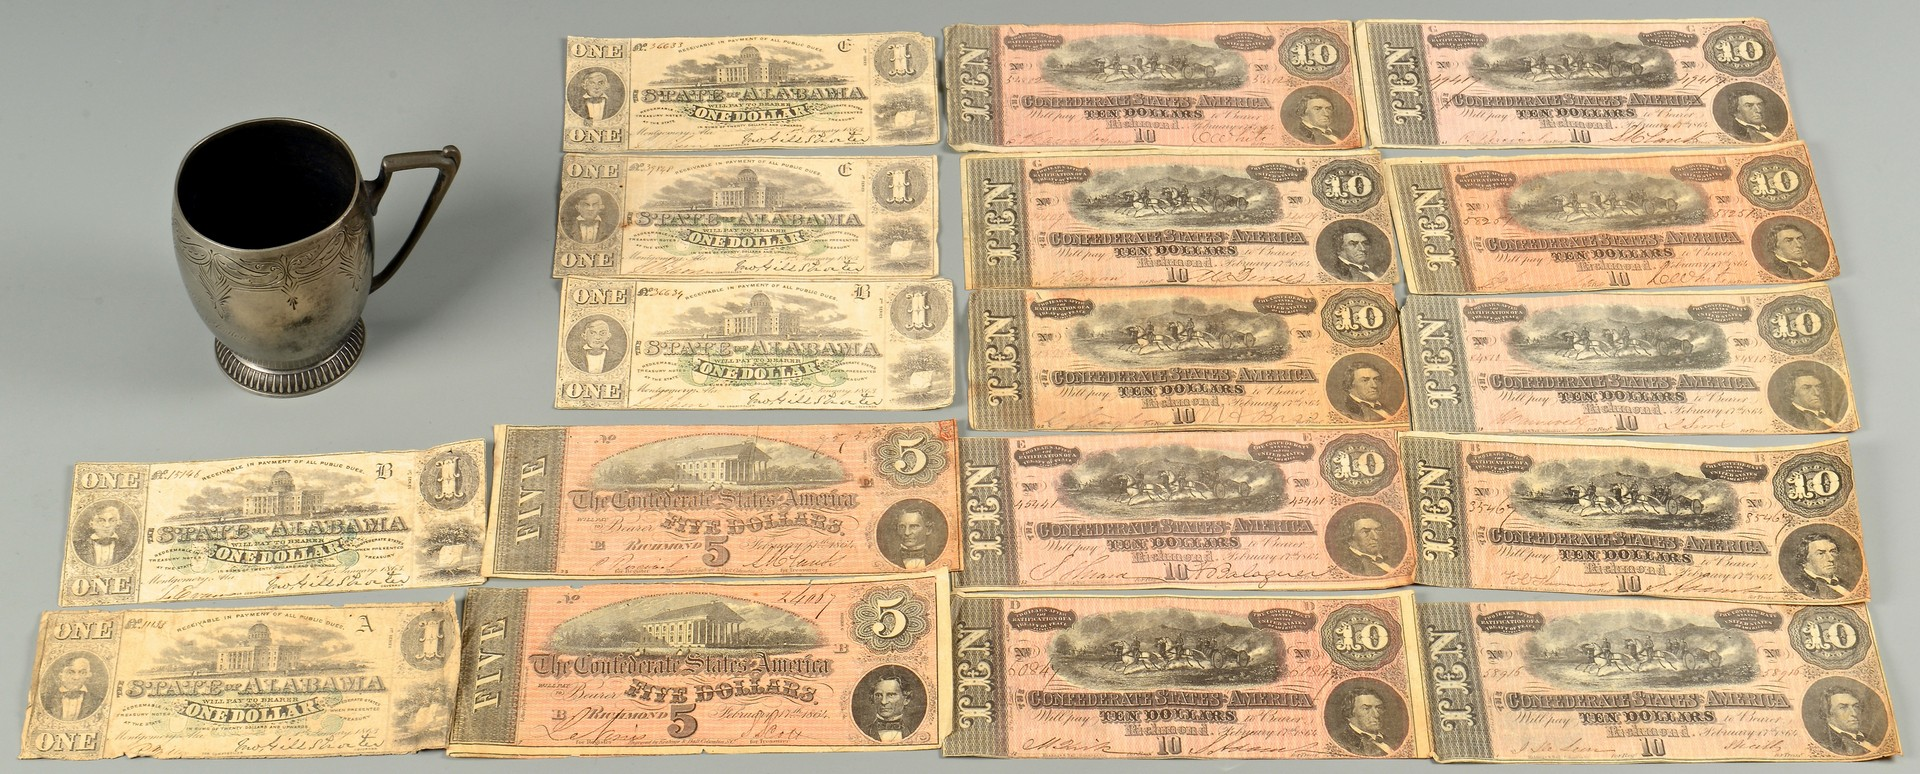 Lot 500: Archive of Confederate Currency & Premium Cup